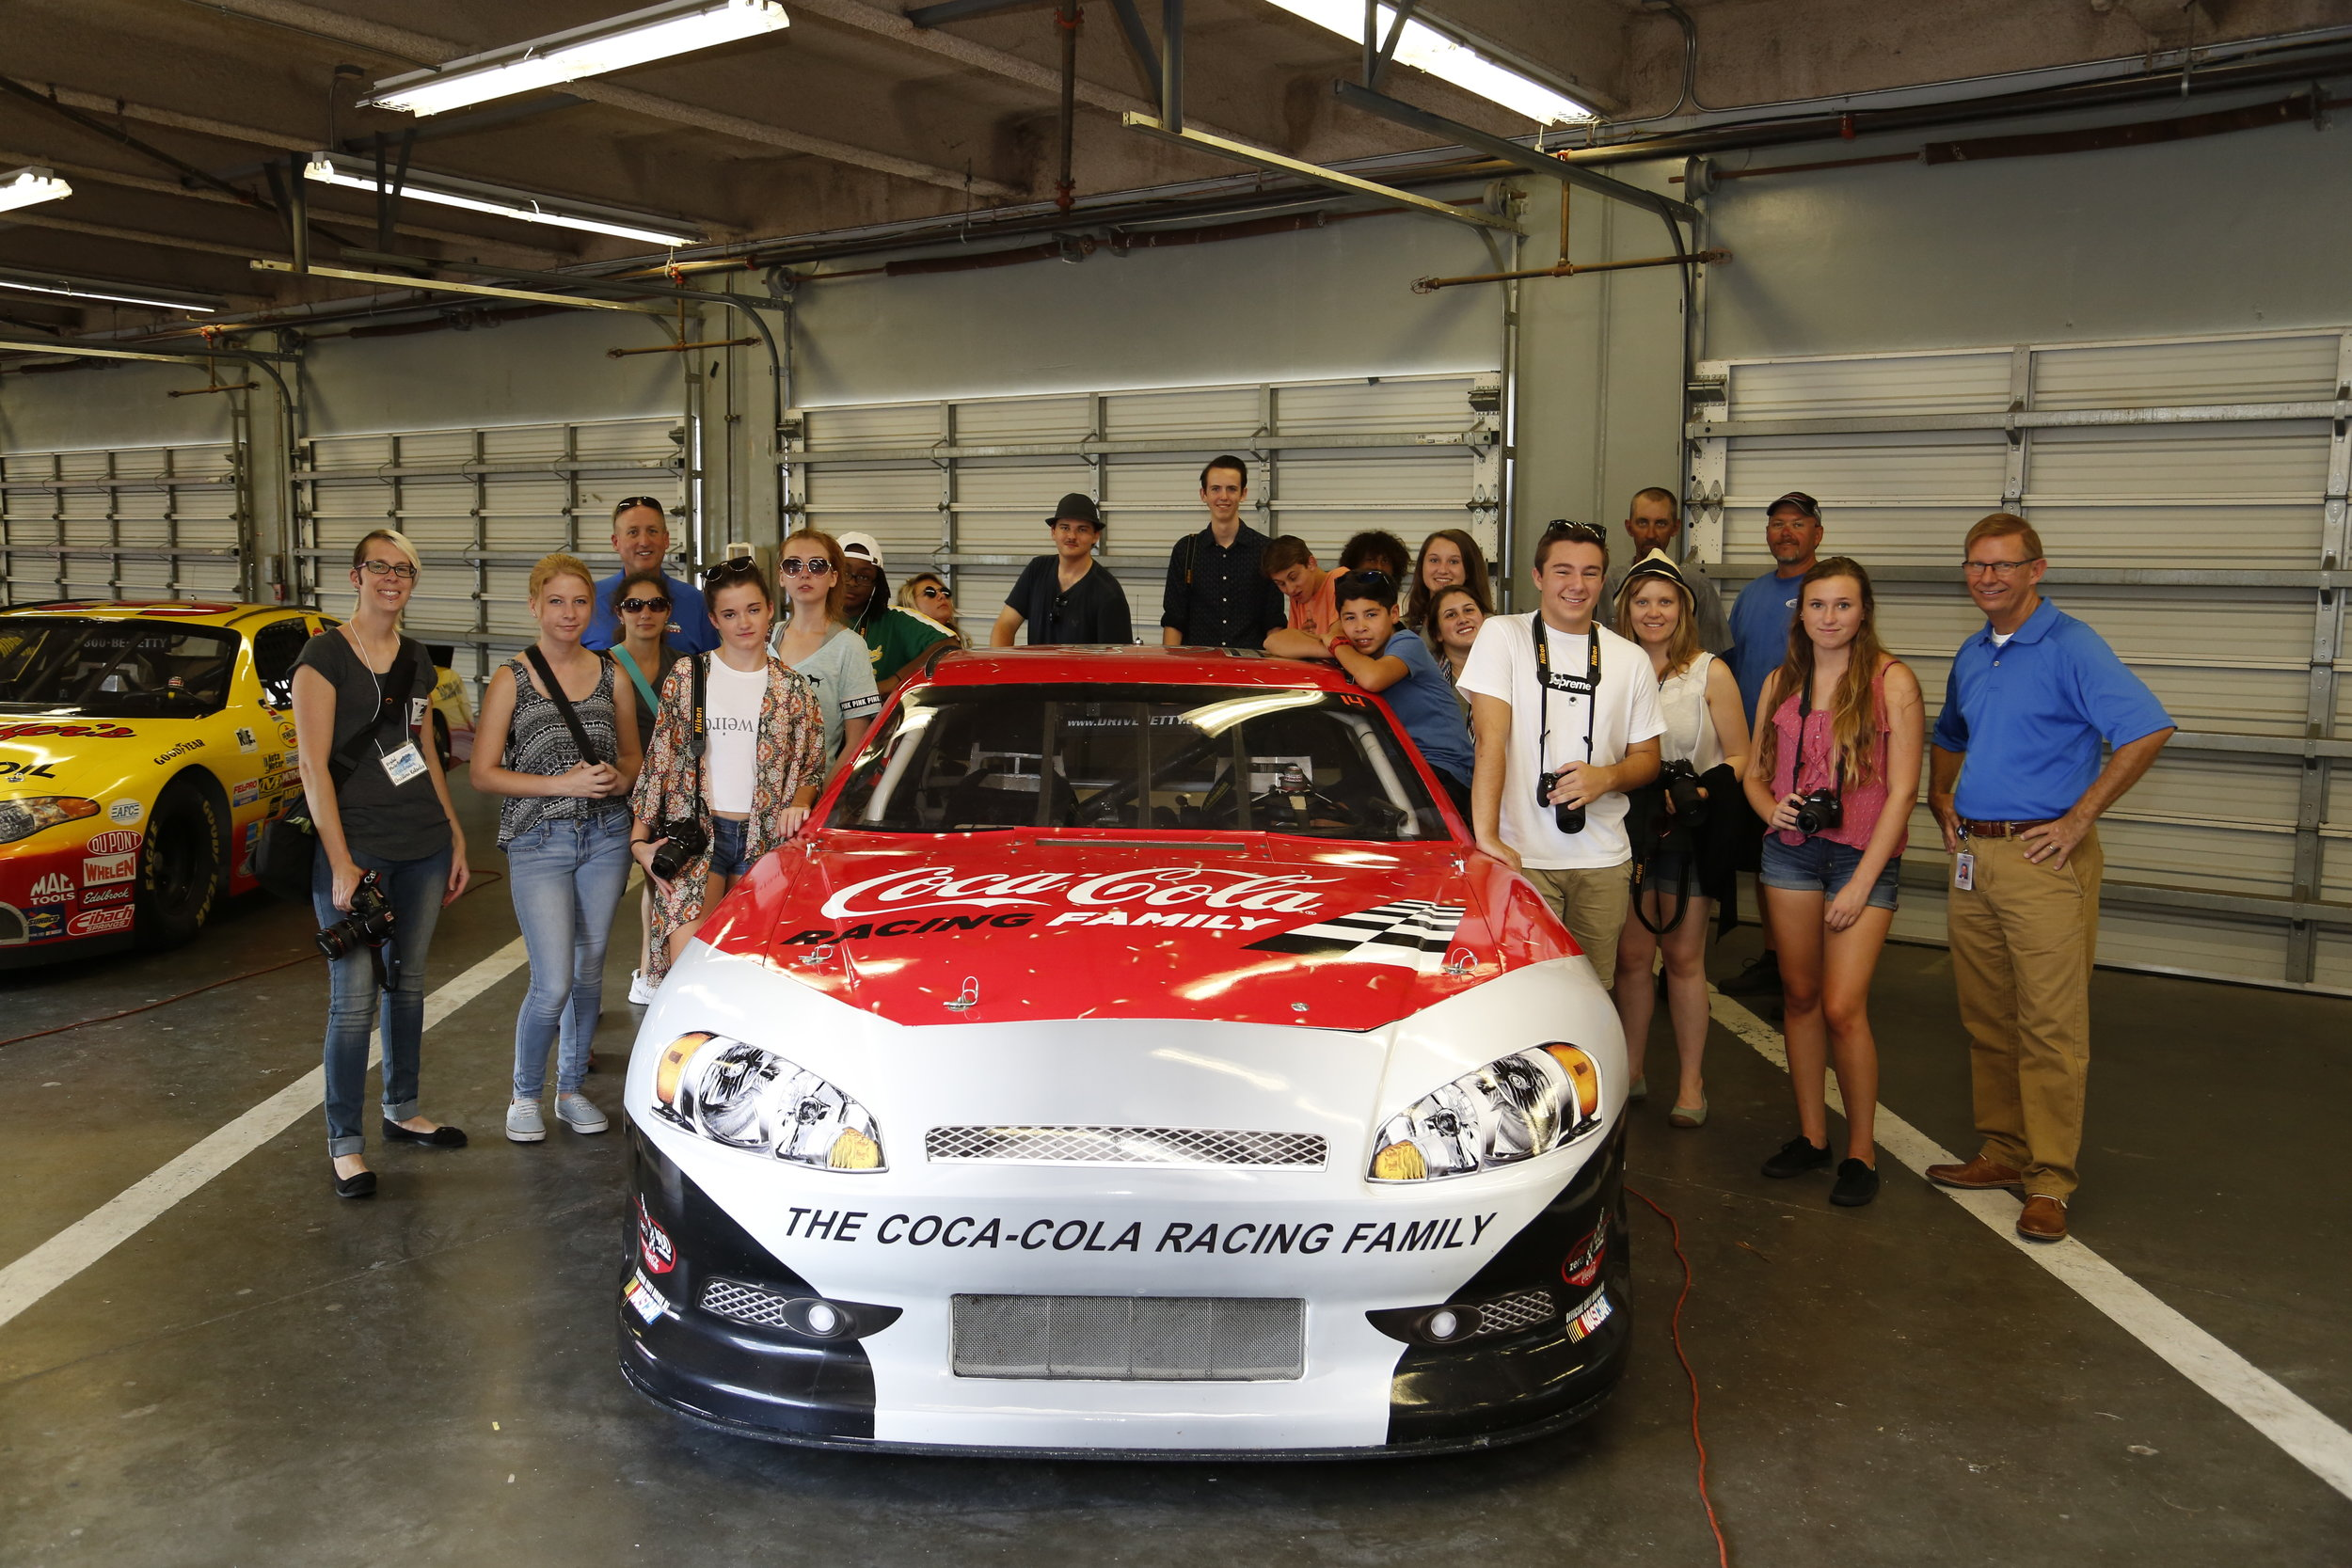 Academy students on a field trip at the Daytona International Speedway in Daytona Beach, FL. Special thanks to photographer Jared East and Media Specialist Mike Meadows for our special VIP tour.